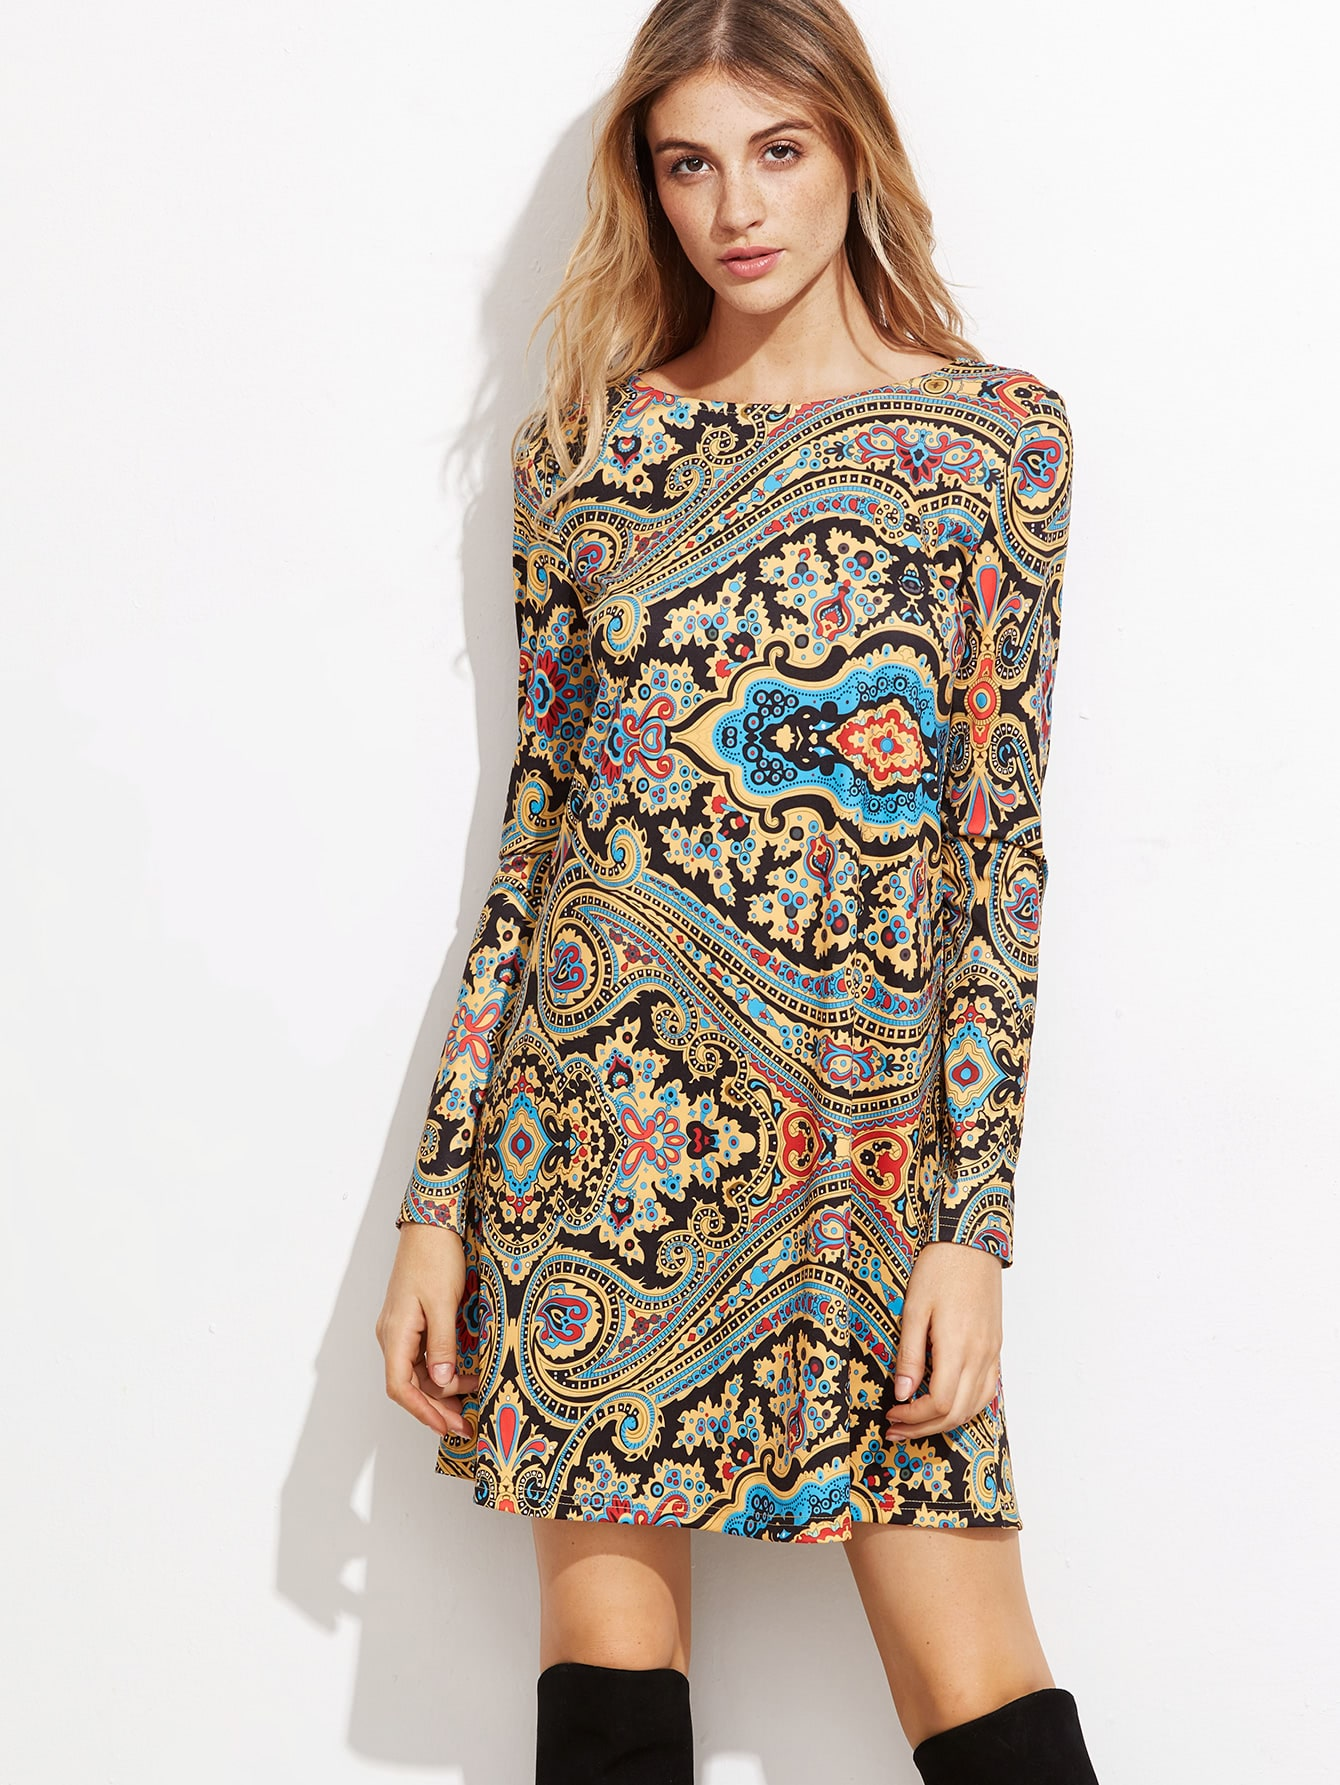 Shop discount Robe A Tunique with high-quality online at Aliexpress. ALSO you will find more relatd Robe A Tunique such as Women's Clothing & Accessories, Dresses, Blouses & Shirts, T-Shirts are waiting for your selection. Don't hesitated to make decisions for buying Robe A Tunique .